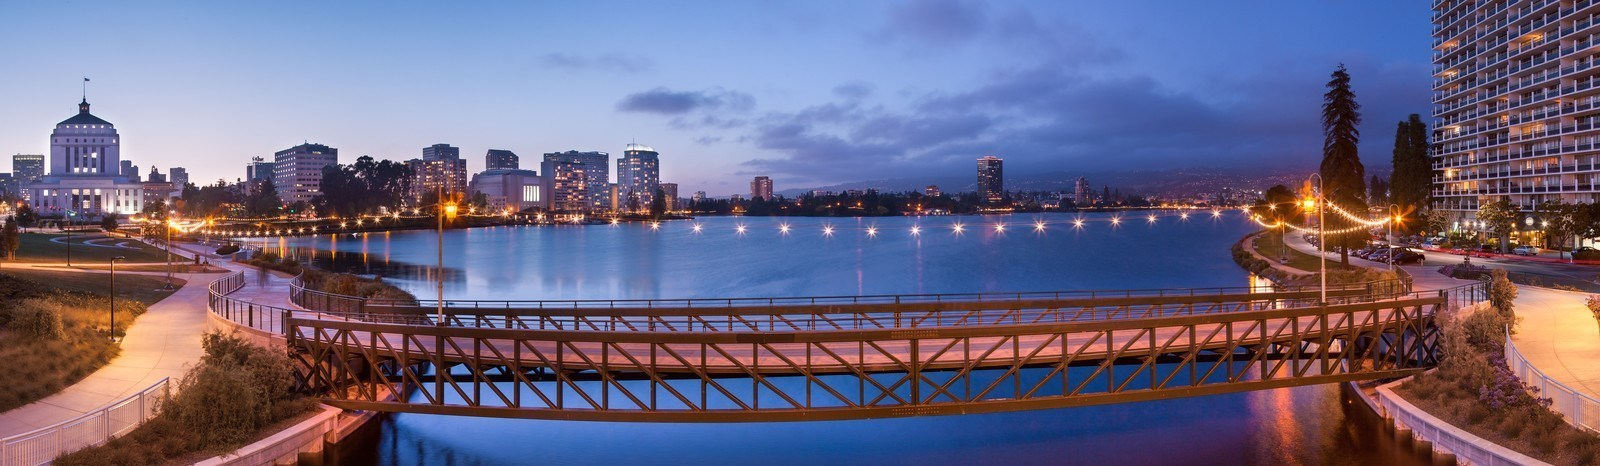 140520 8320 Lake Merritt Bridge Super Hd Panorama X3 Pic For Explore Budget